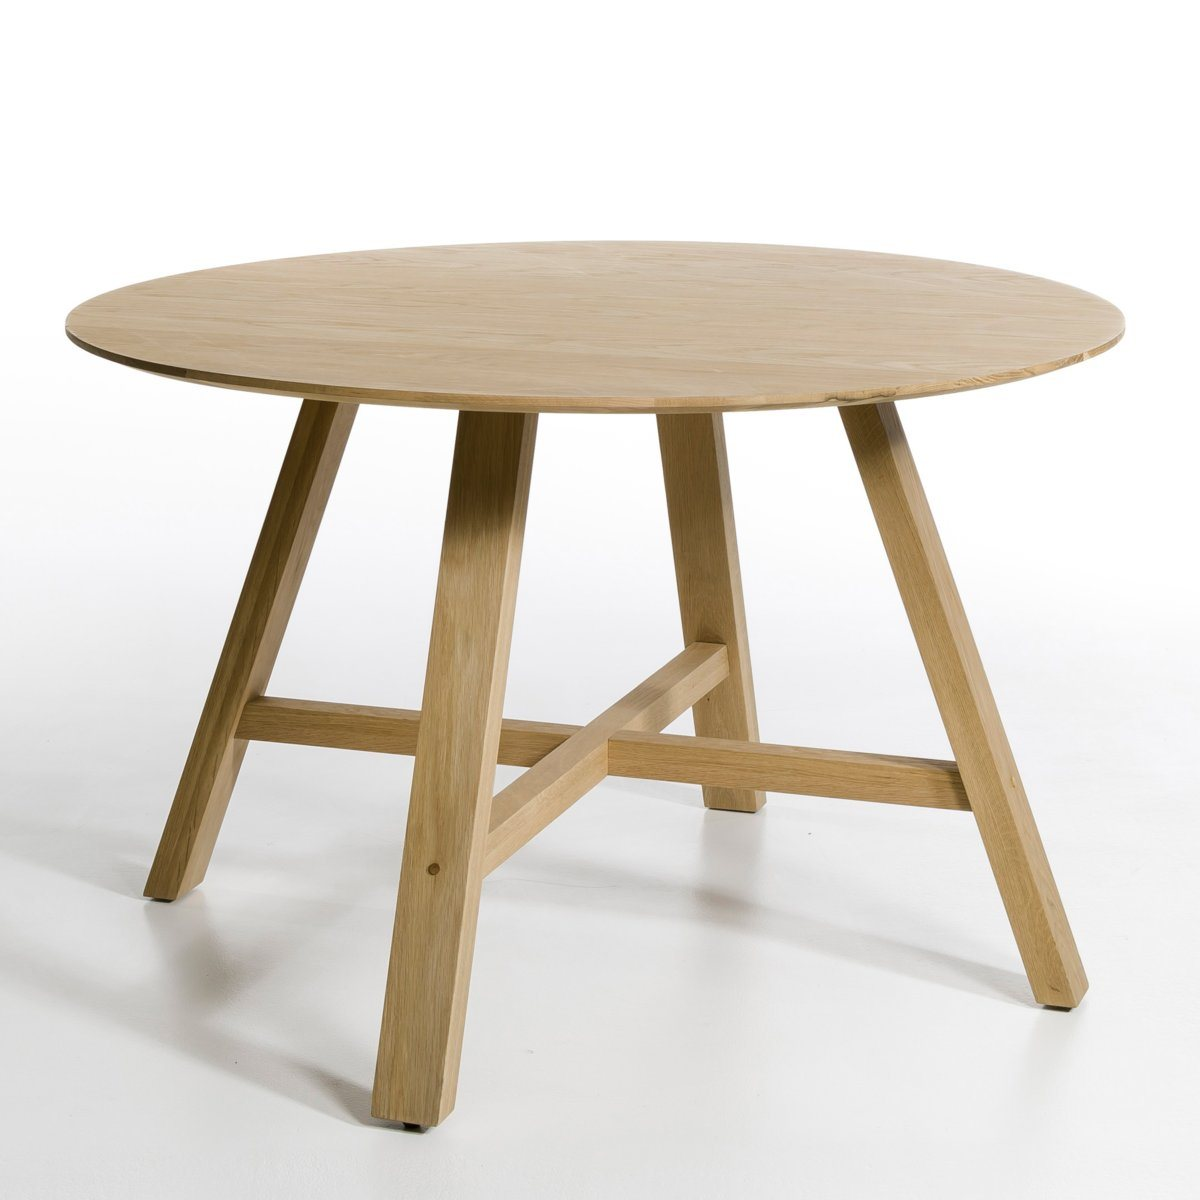 Table ronde Buondi, design E. Gallina